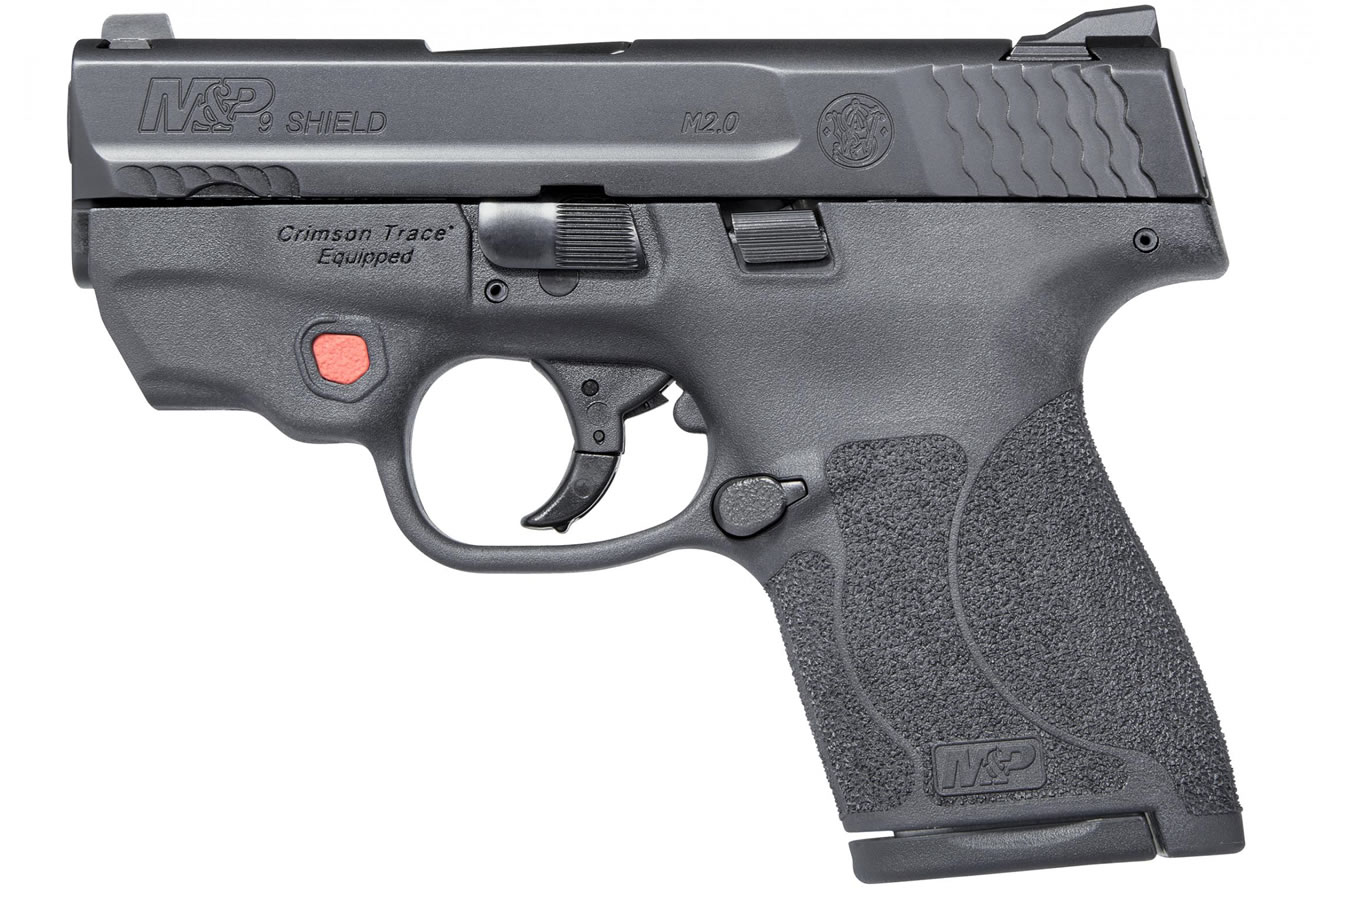 M&P9 Shield M2 0 9mm with Integrated Crimson Trace Laser and No Thumb Safety